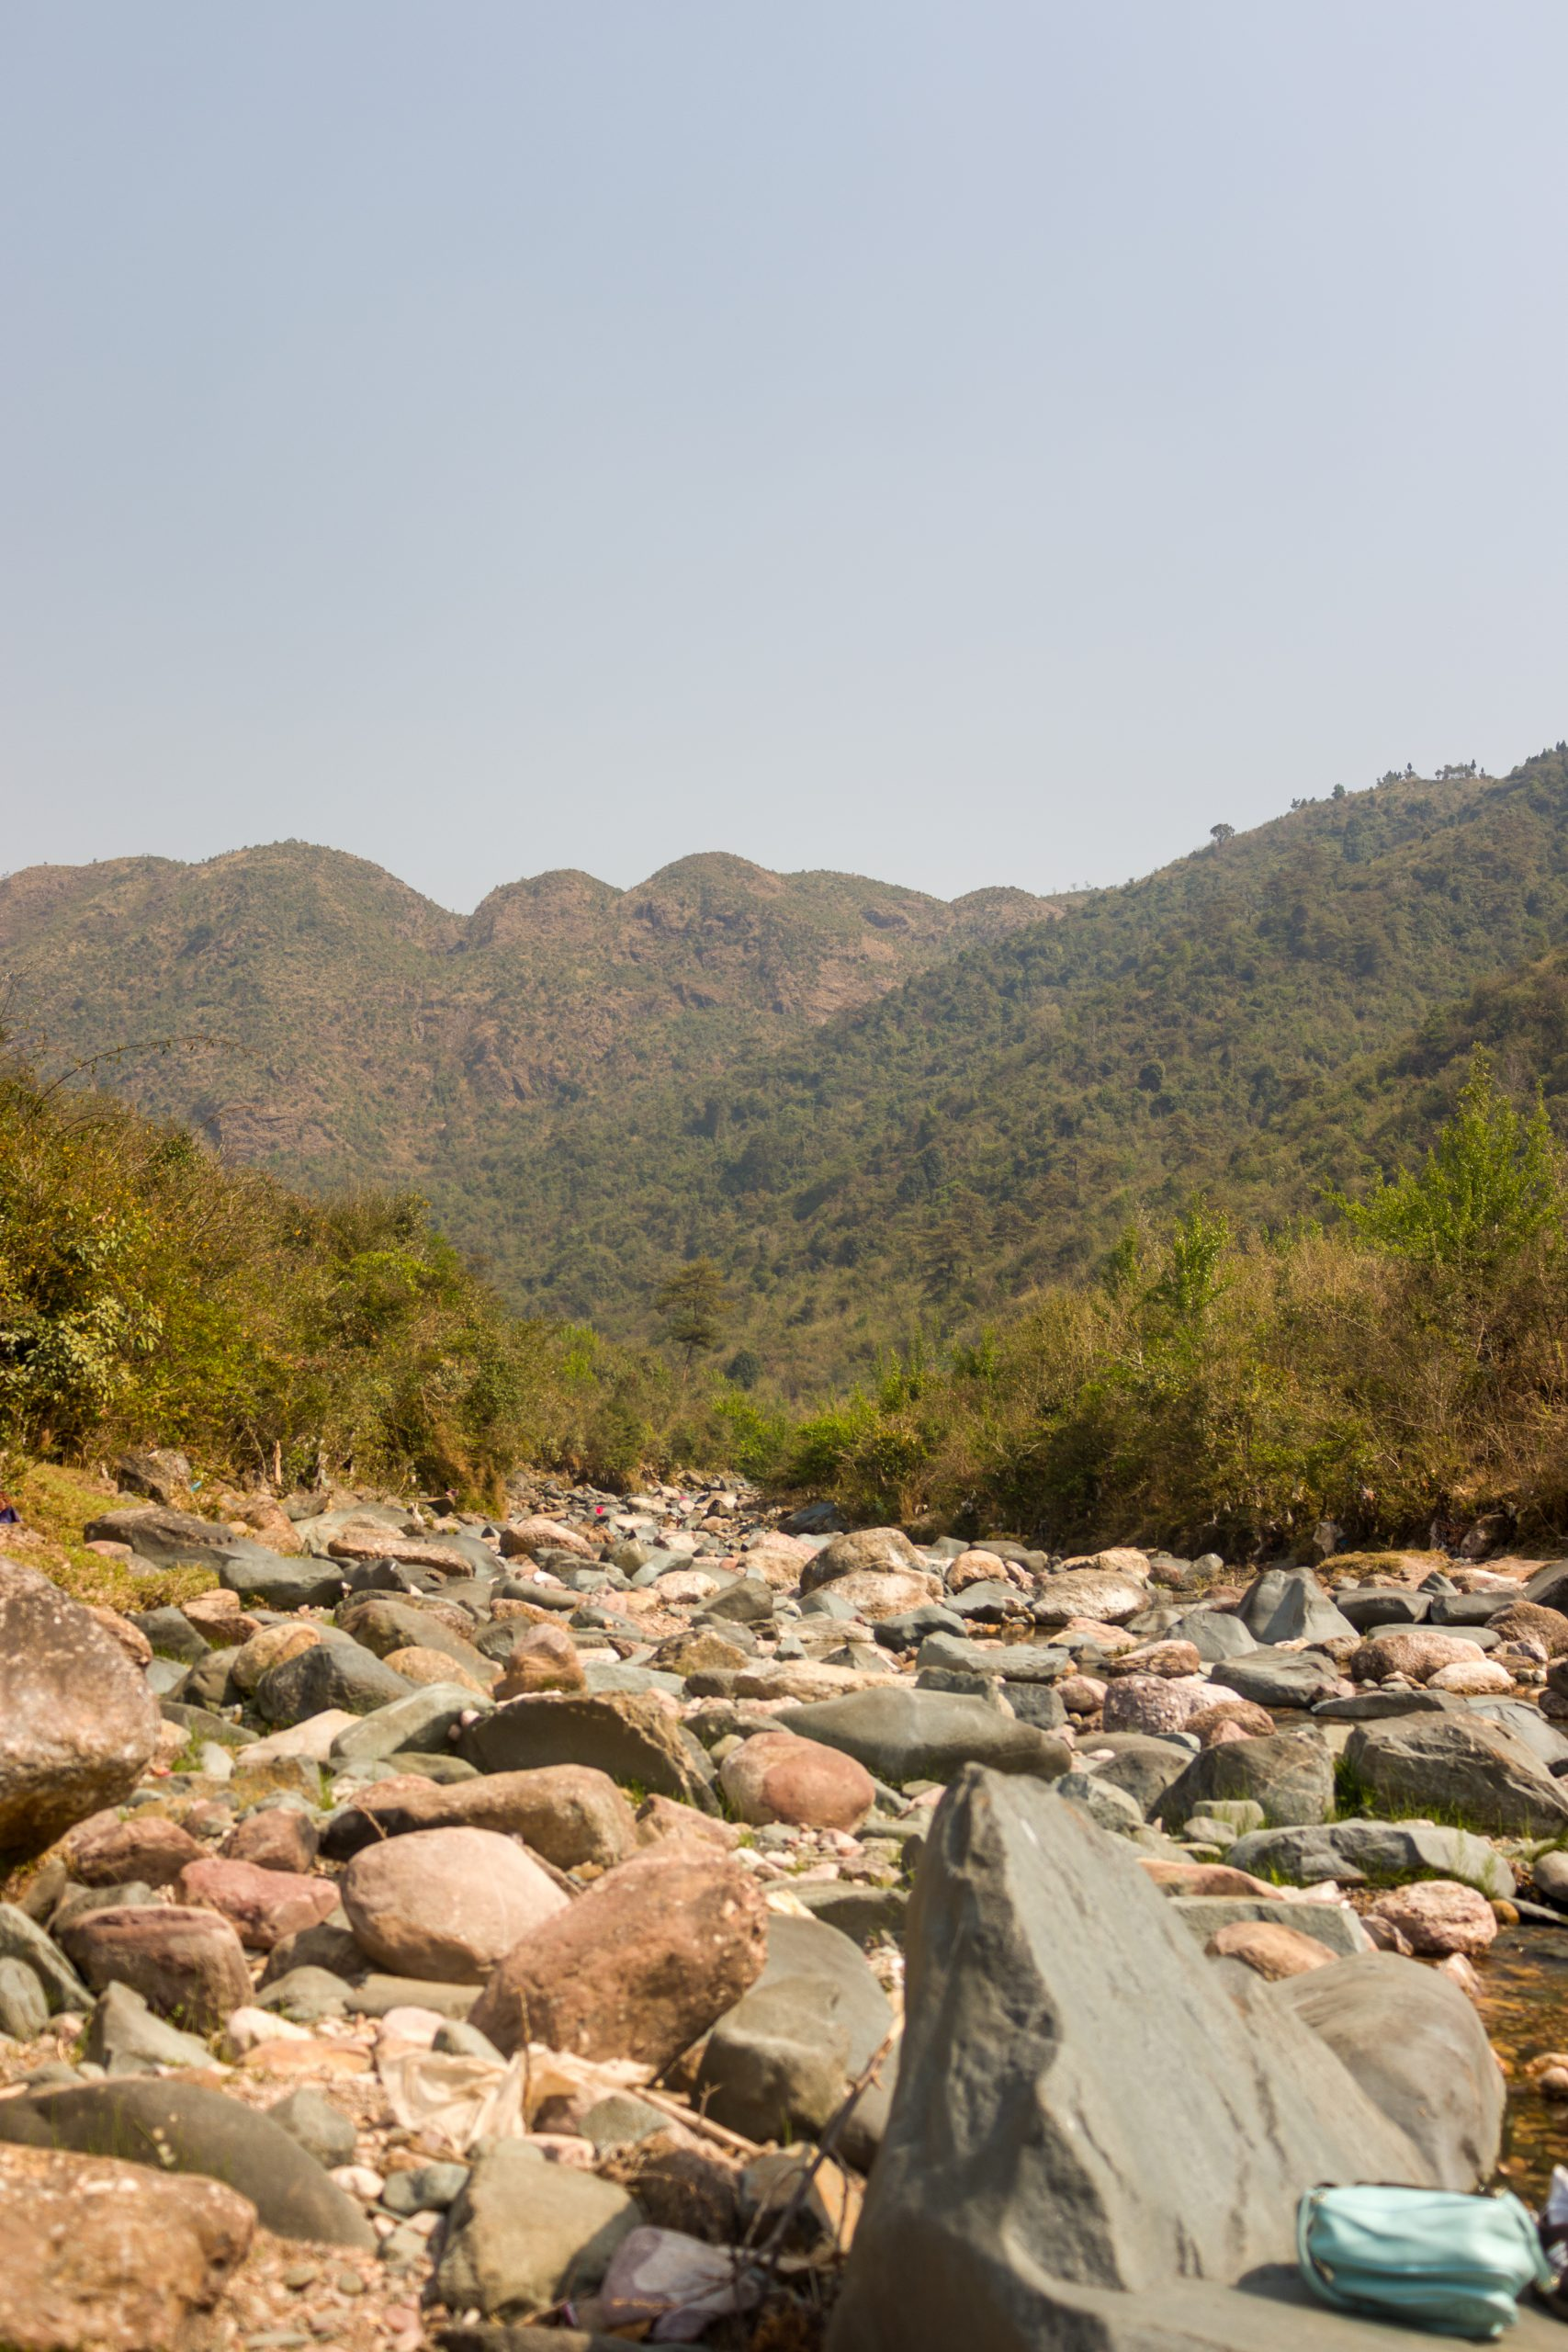 Stones in a dry river under mountains